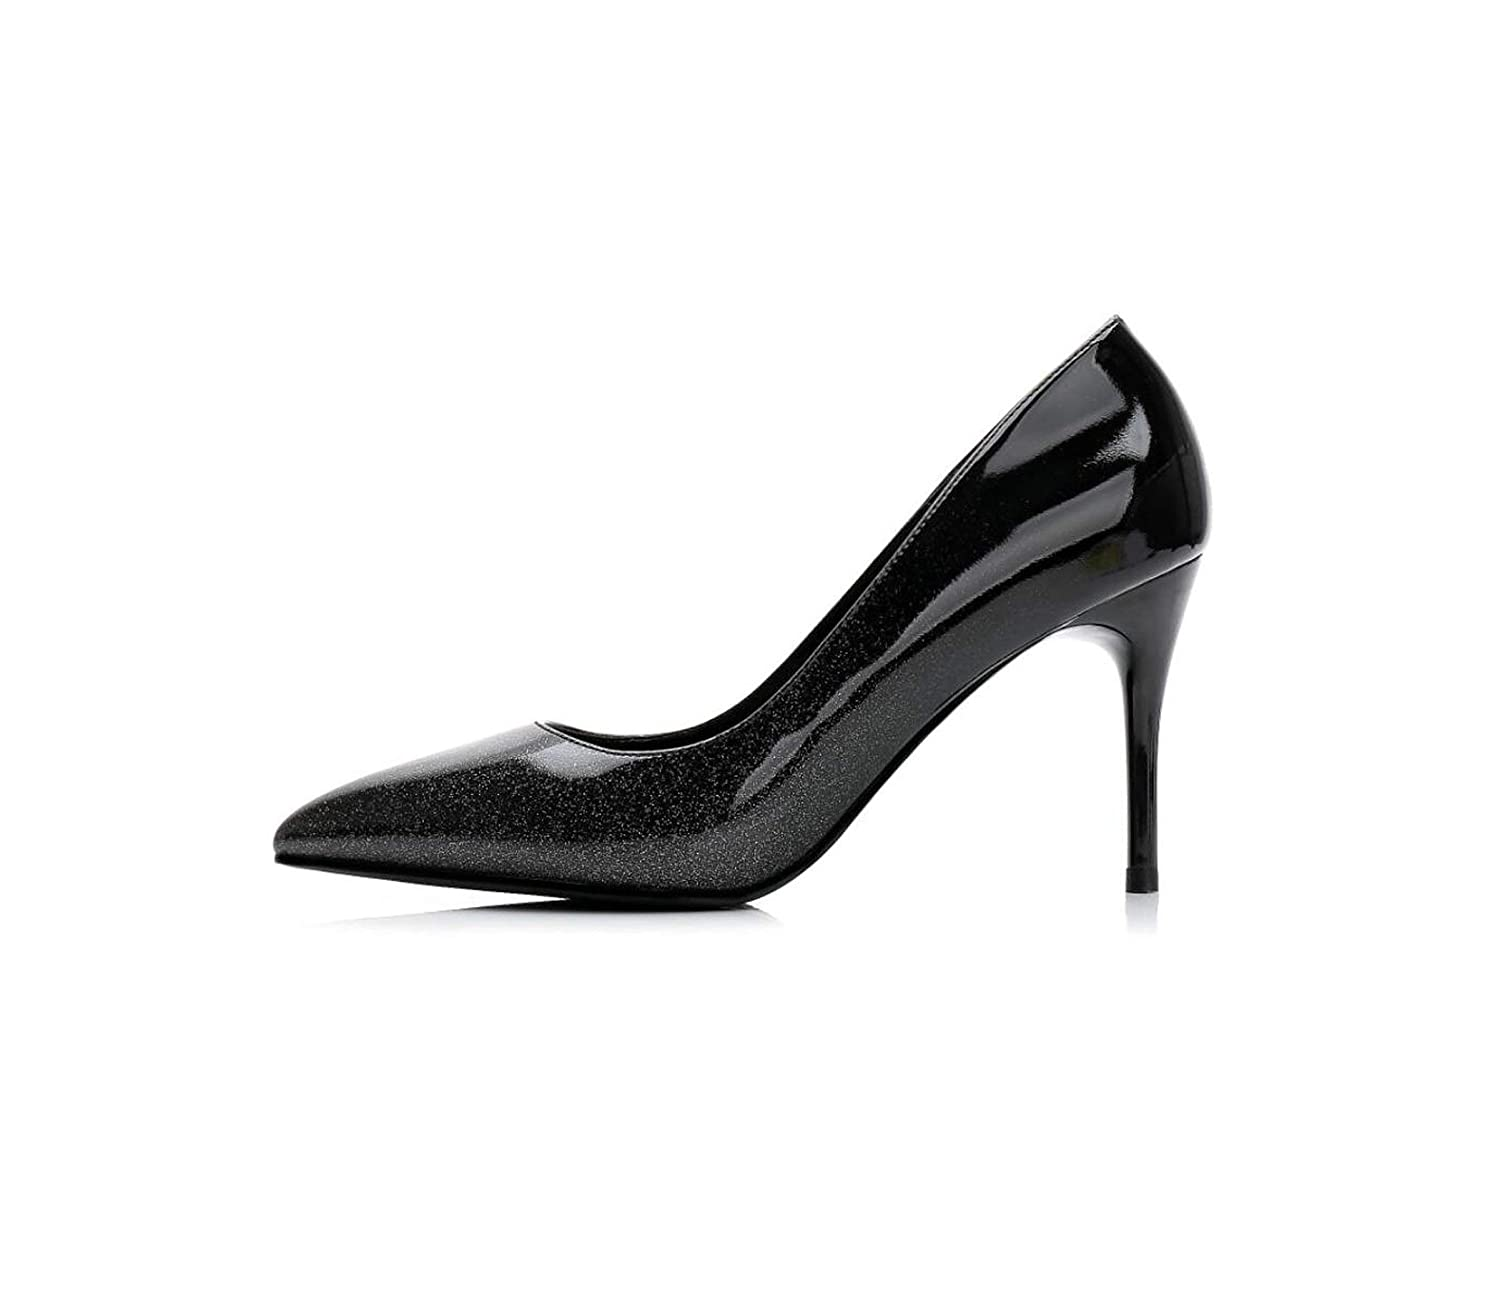 Black High Heels Gradually Changing color Patent Leather Pointed Toe Women Office Lady Dress High Heel Pump